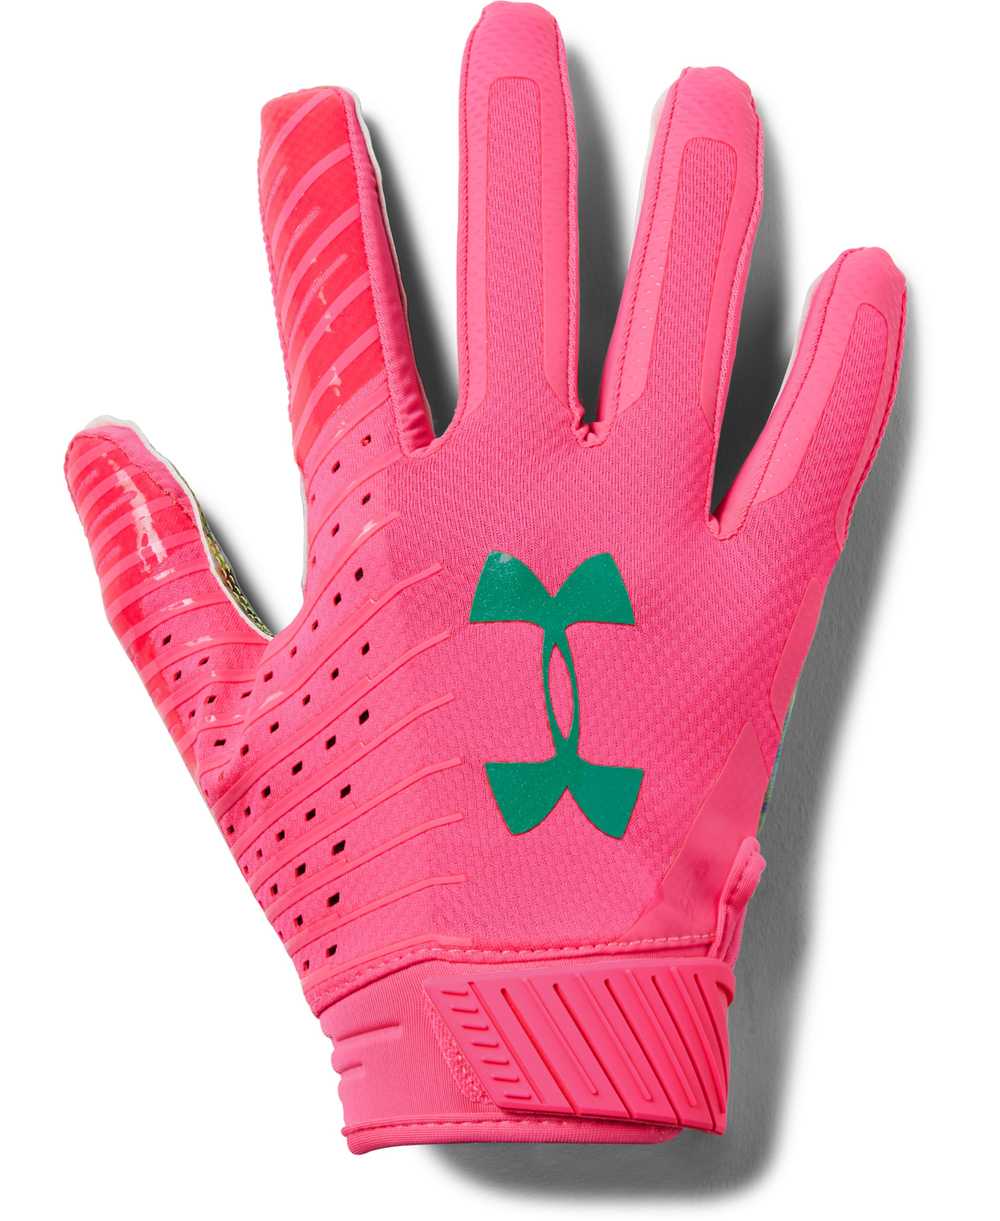 Spotlight LE Men's Football Gloves Mojo Pink 641